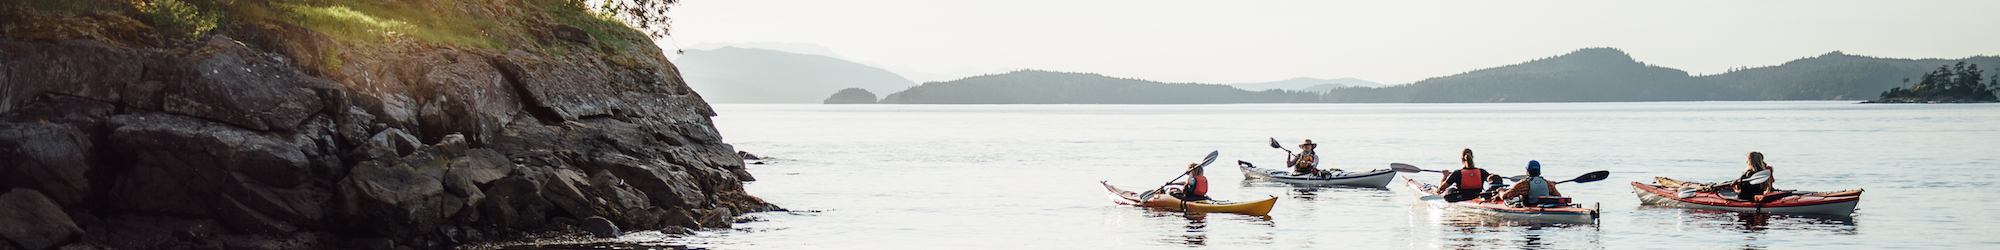 pender island kayak adventures tour